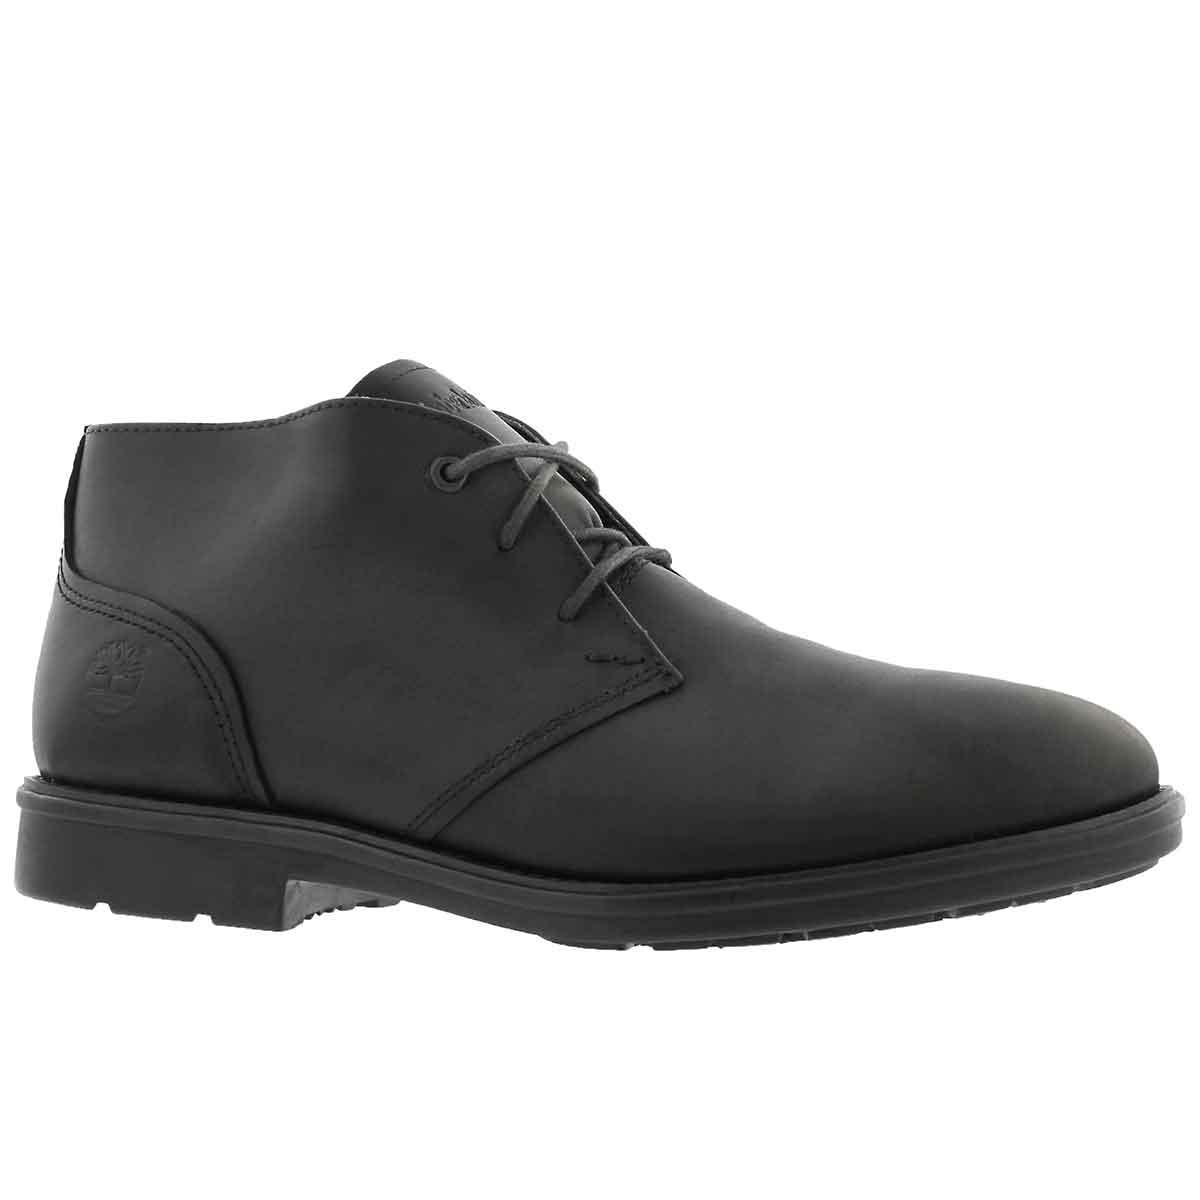 Men's CARTER NOTCH black chukka boots- Wide